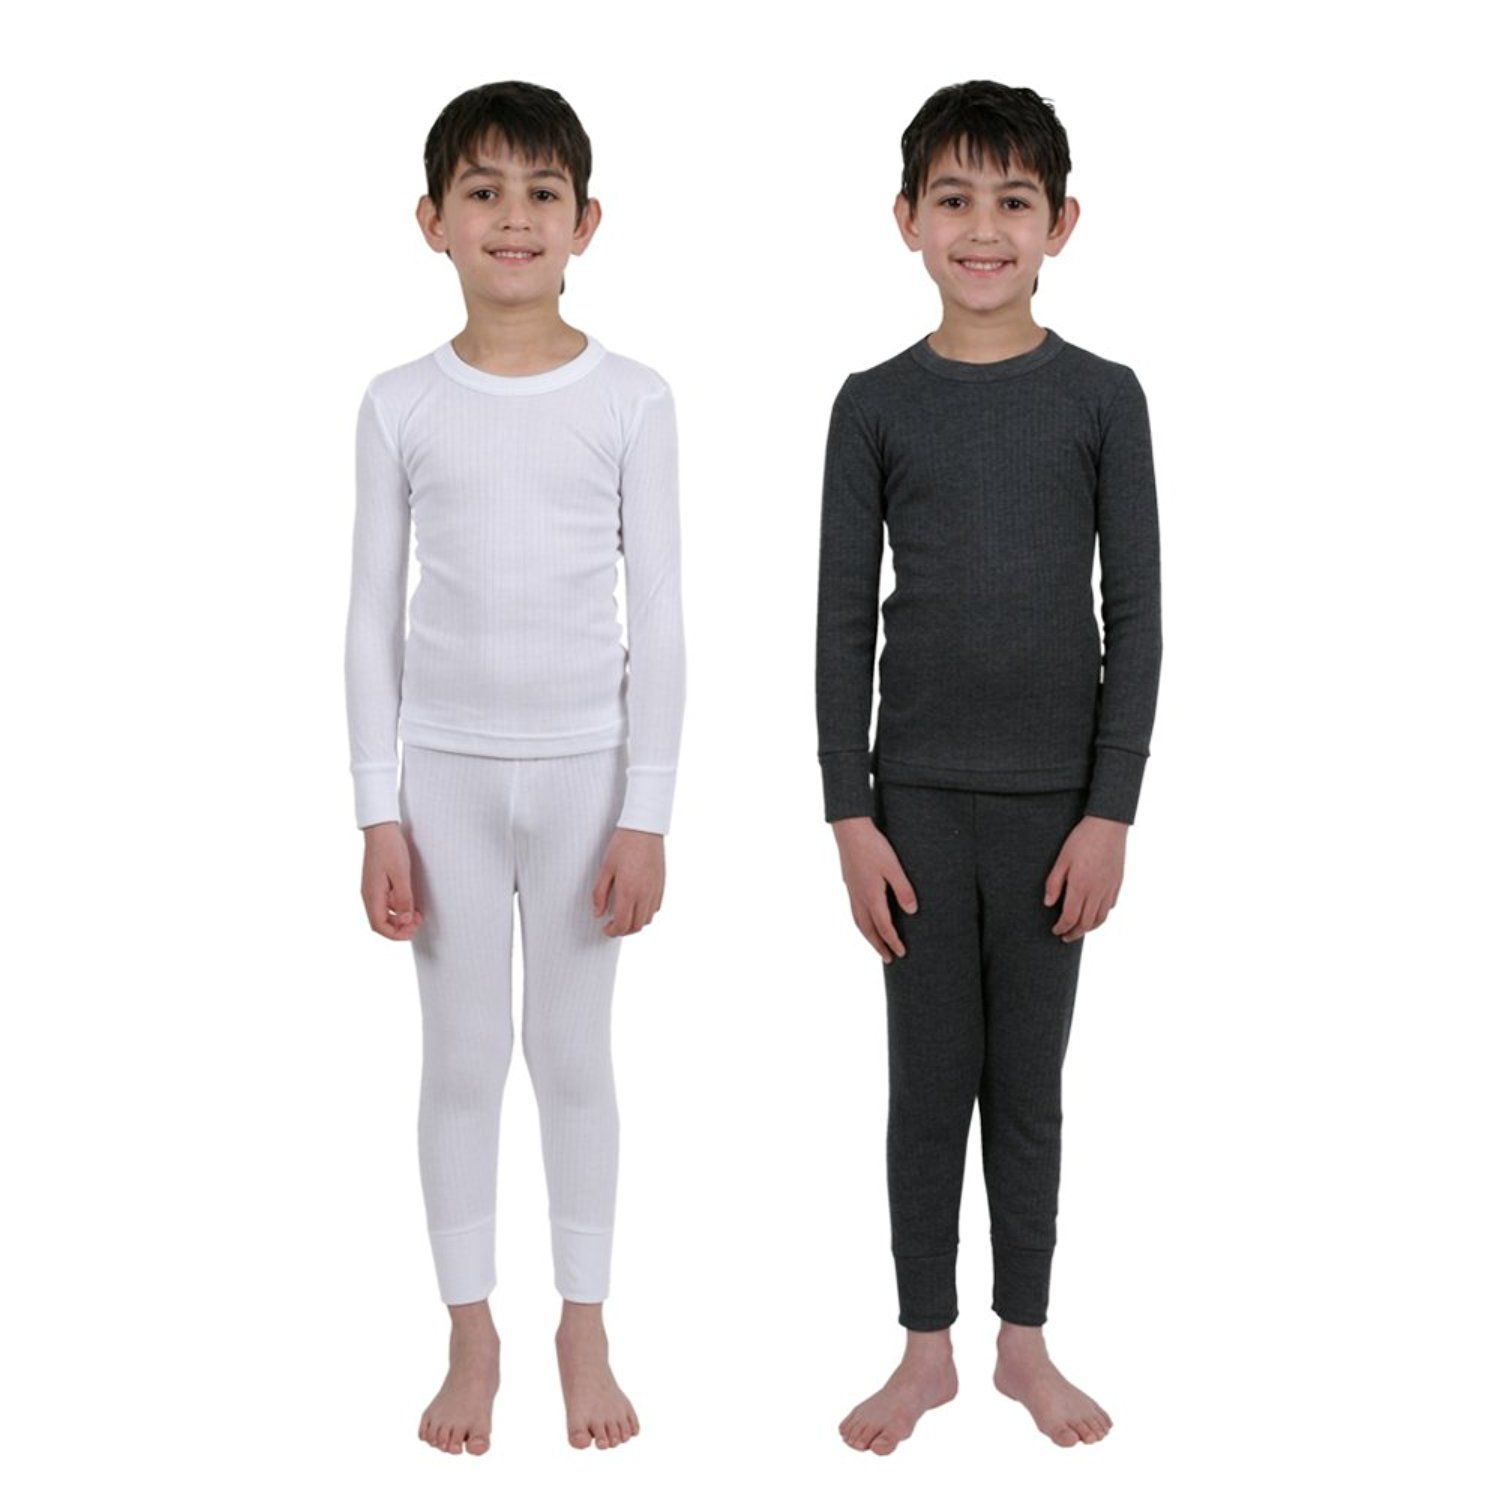 Black  Small 32 Degrees Weatherproof Big Boys Base Layer Thermal Shirt Long Underwear Set